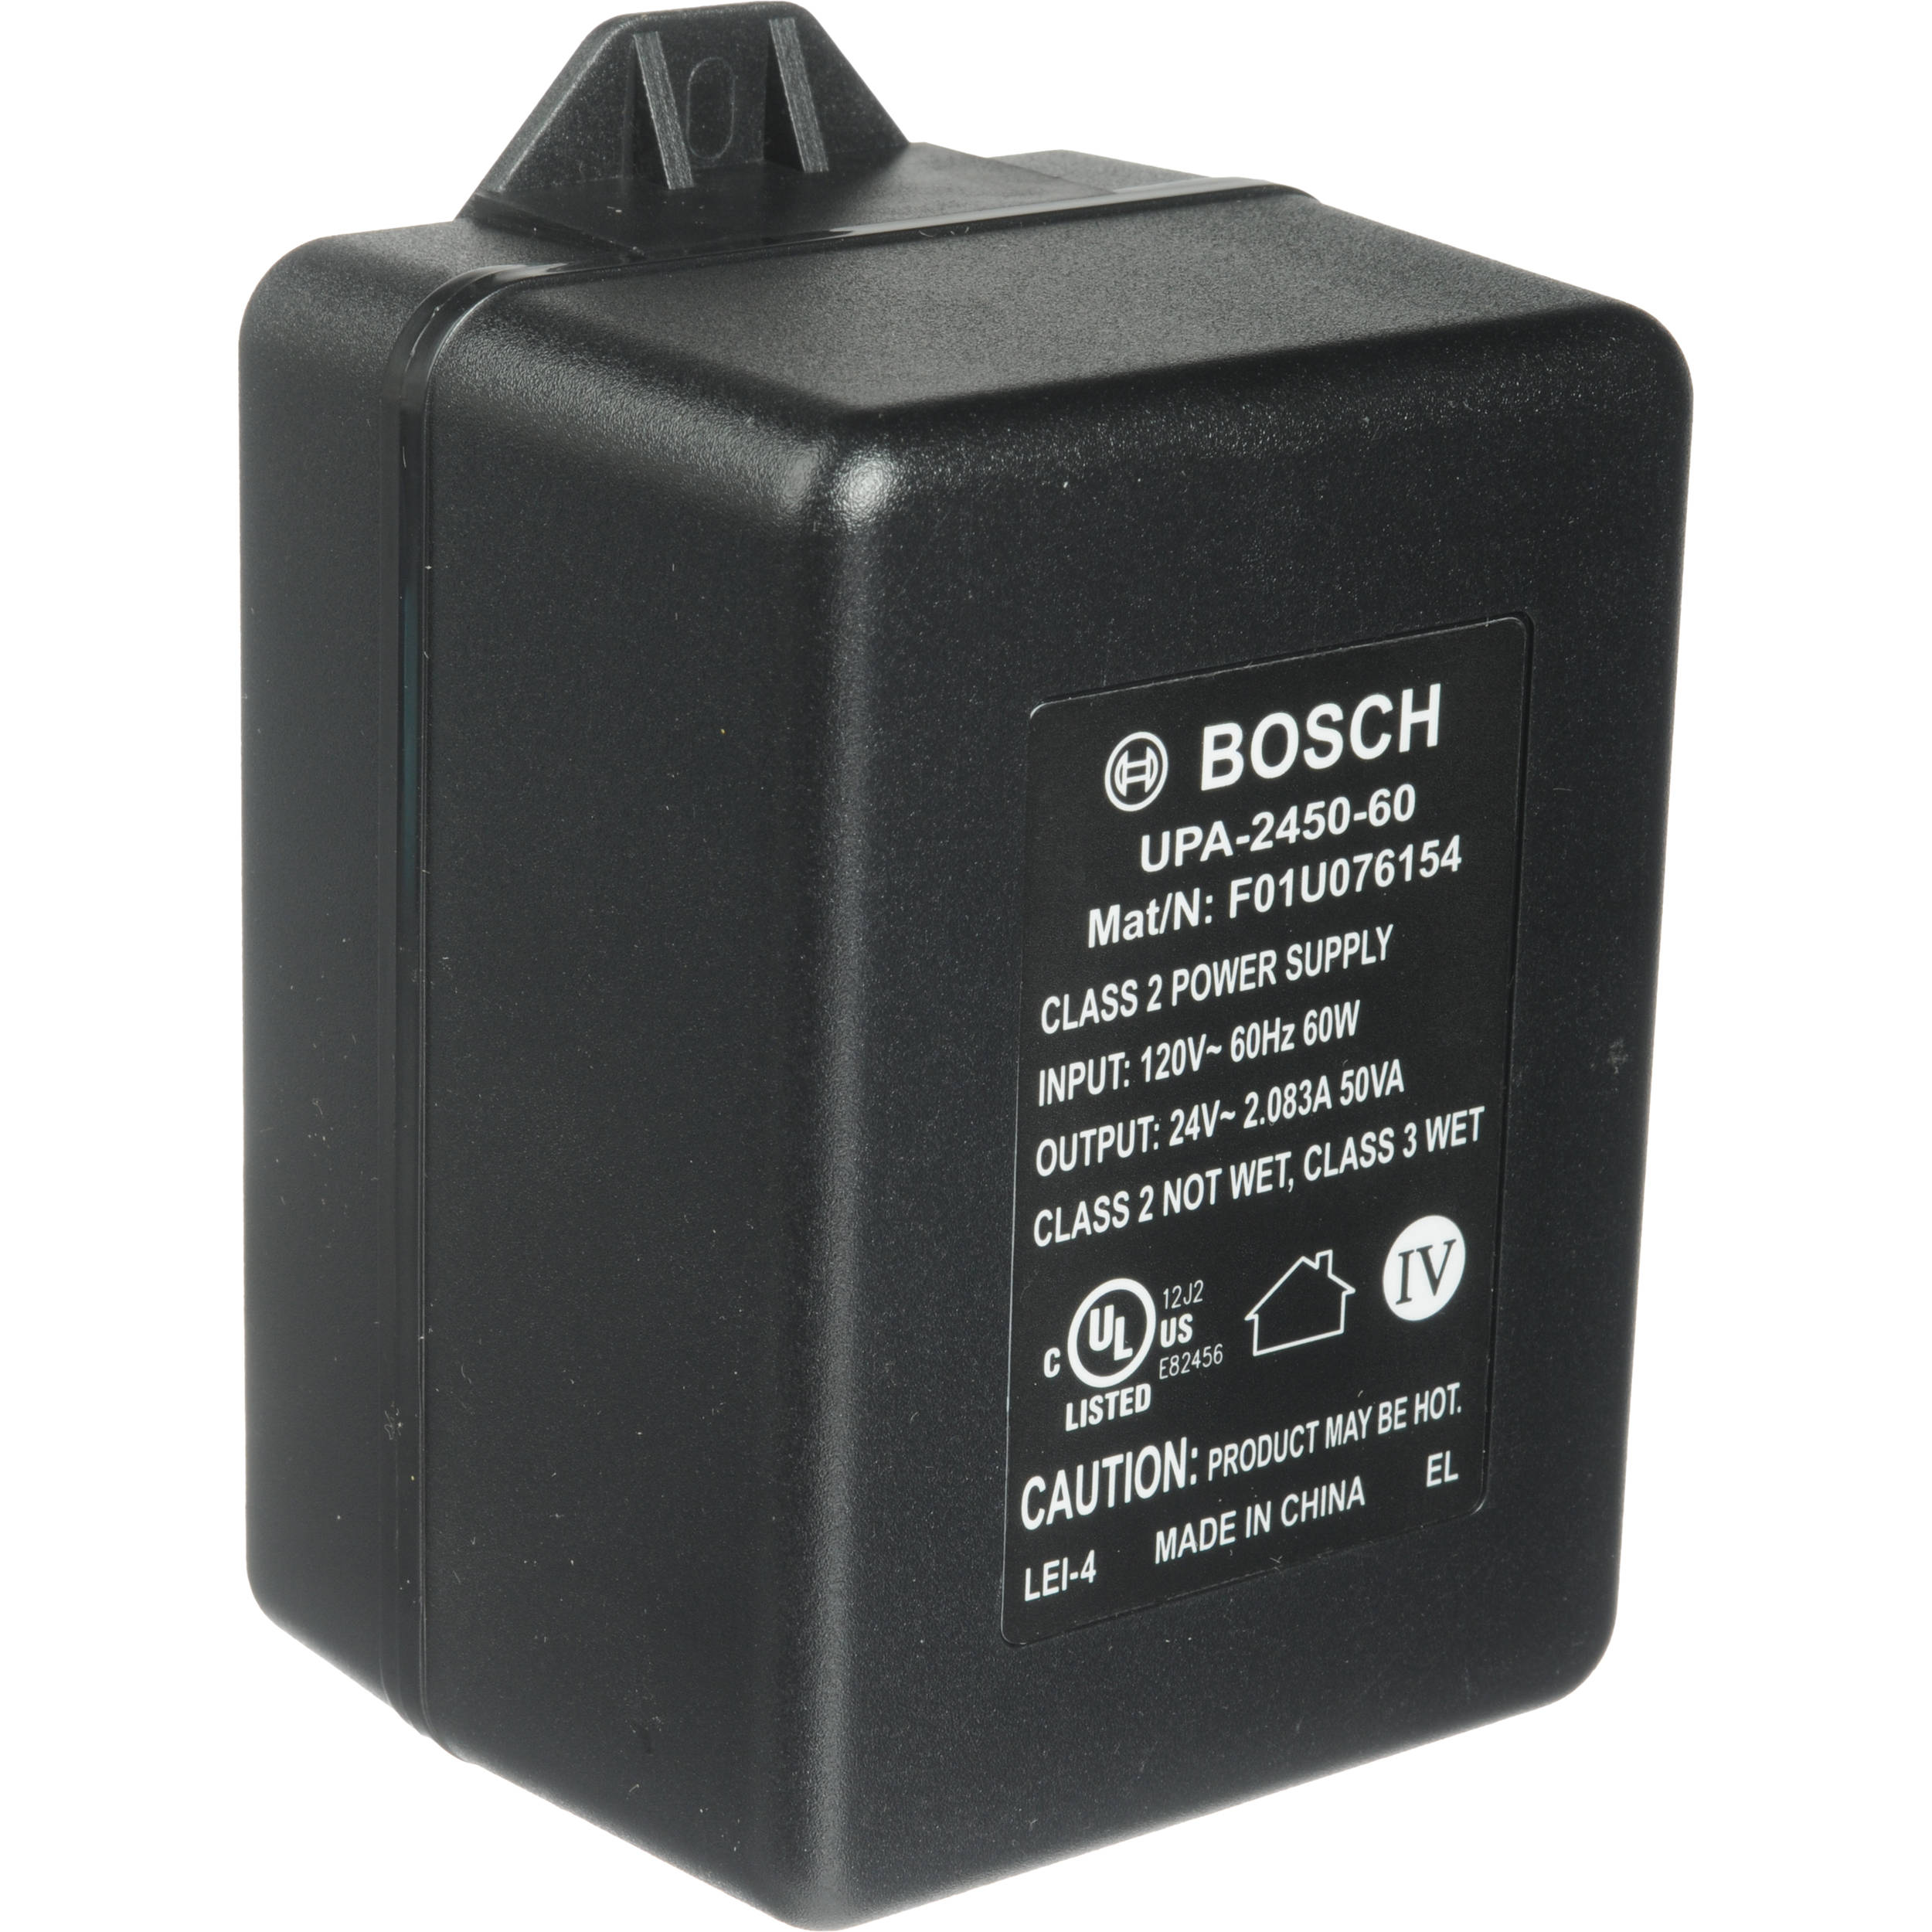 Bosch UPA-2450-60 24 VAC Power Supply (50 VA, 60Hz)